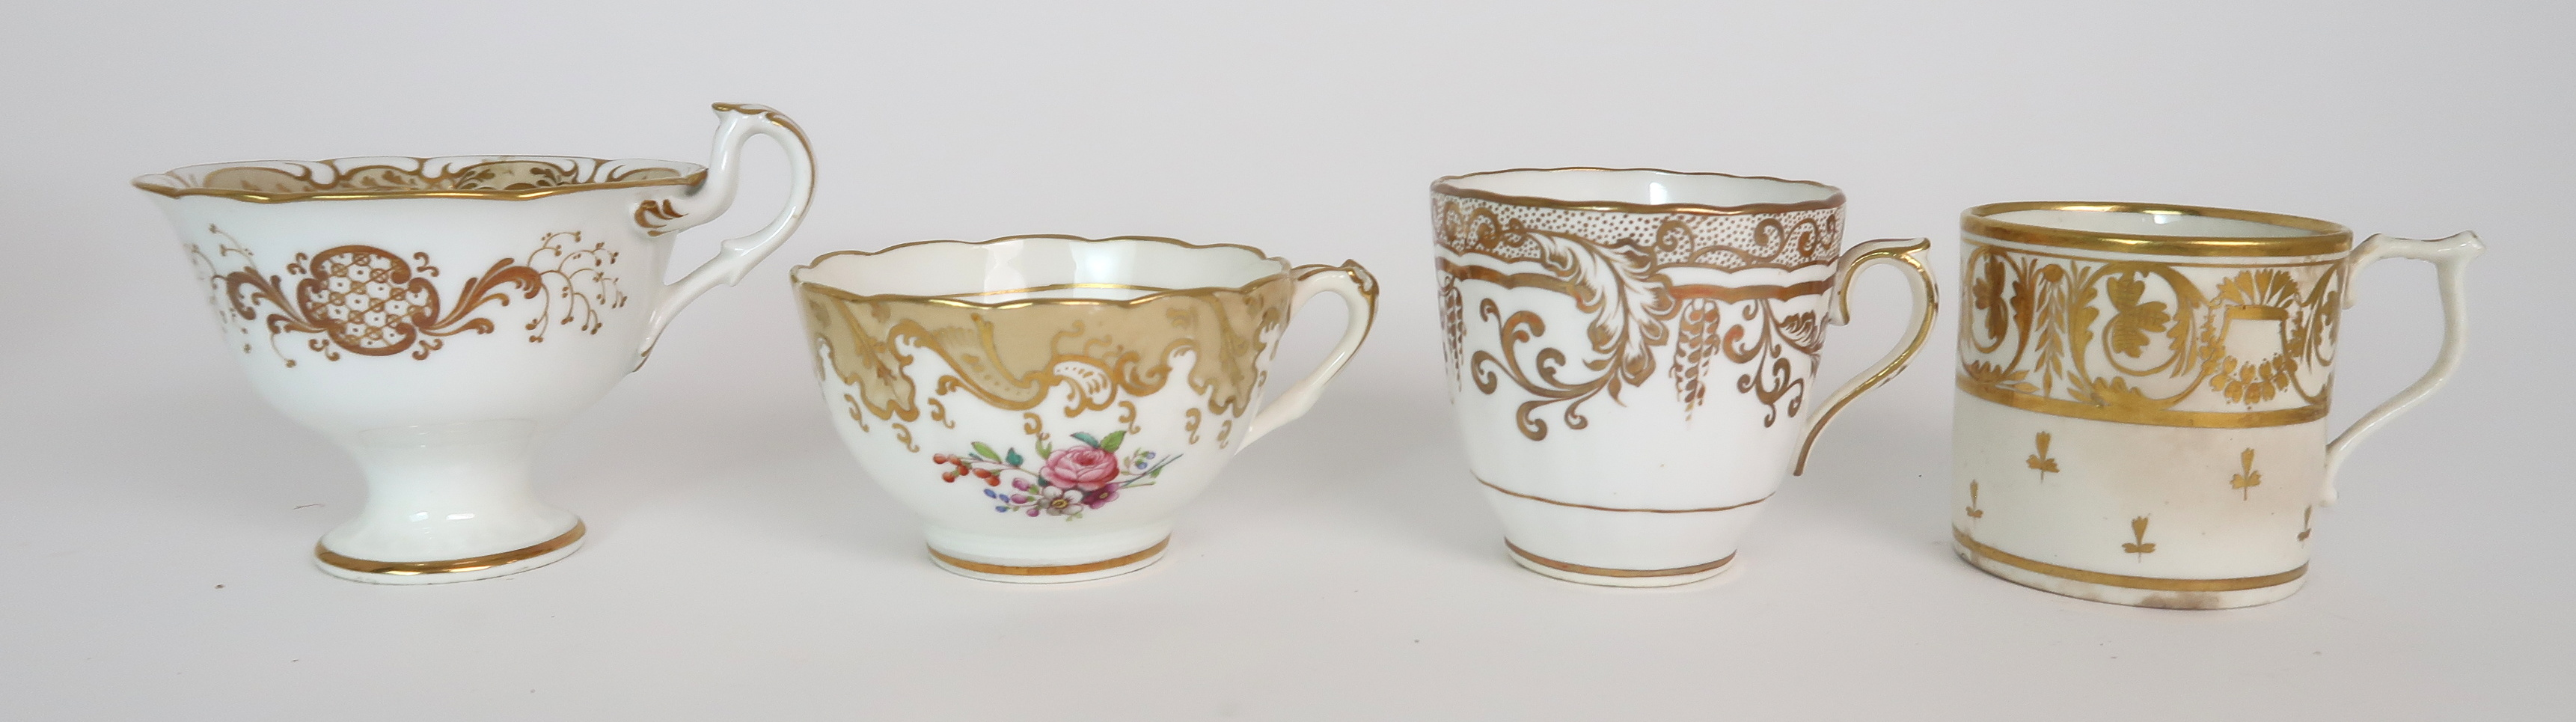 A COLLECTION OF 19TH CENTURY ENGLISH TEA AND COFFEE WARES the white ground with either grey and gilt - Image 11 of 22